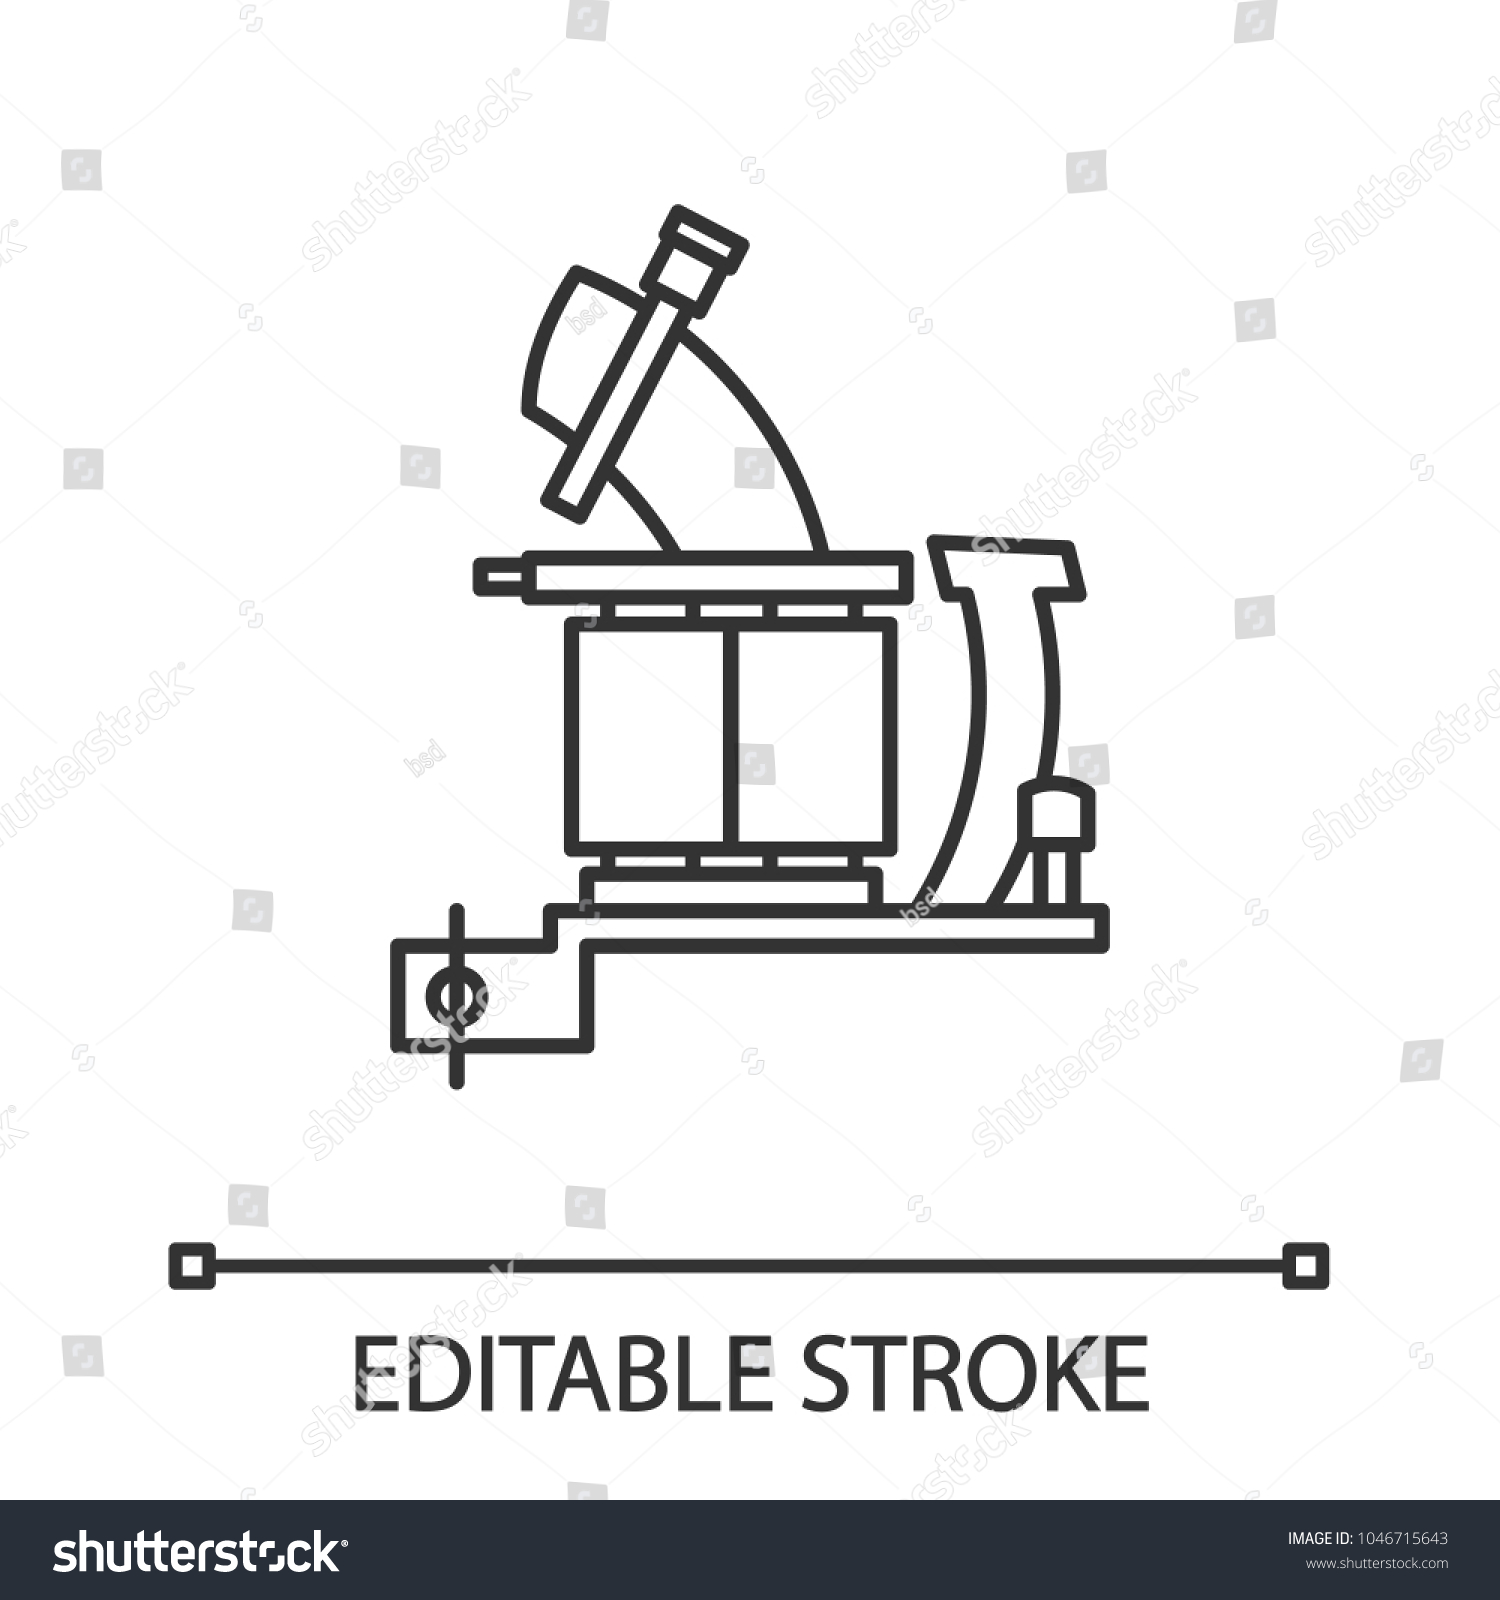 Tattoo Machine Frame Coils Linear Icon Stock Vector Royalty Free Coil Gun Diagram With Thin Line Illustration Contour